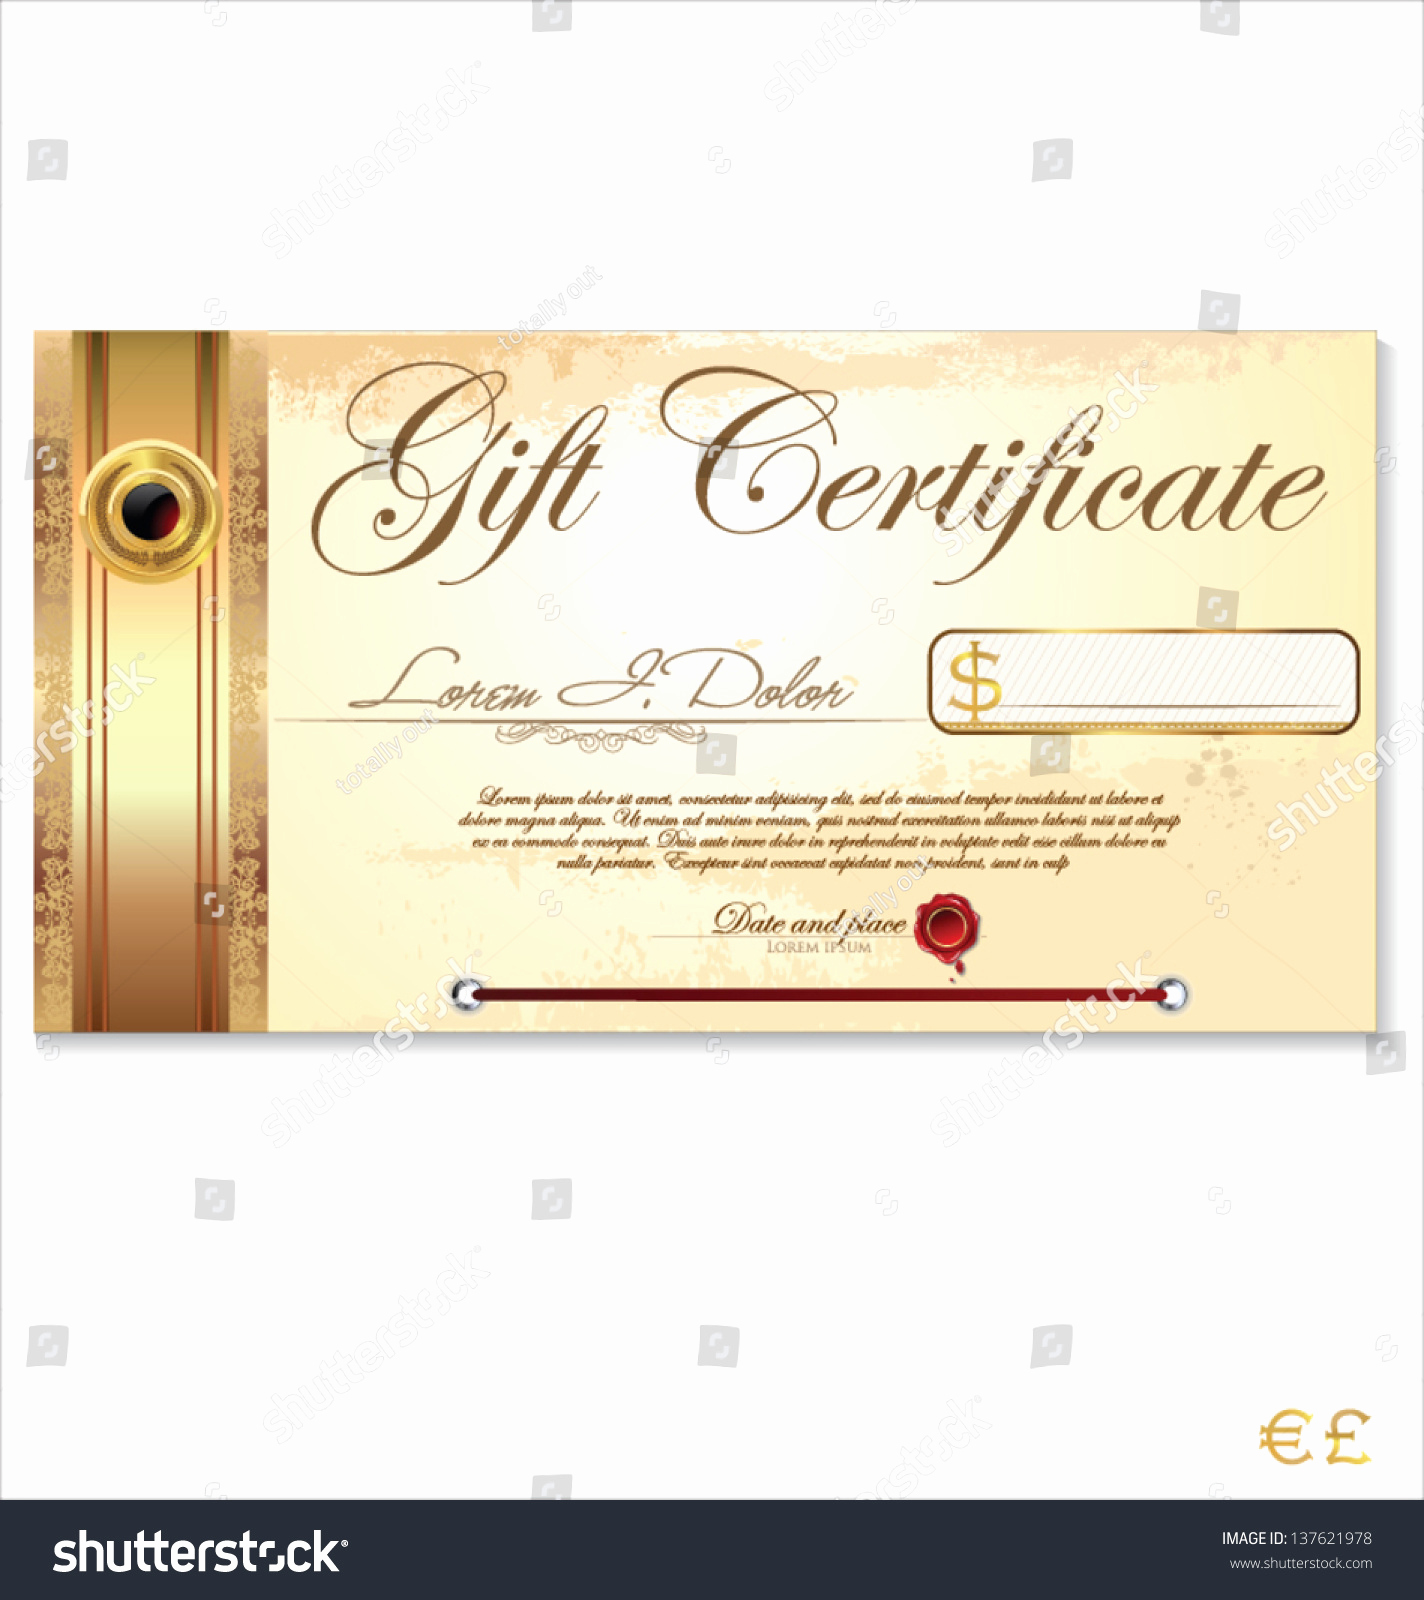 Email Gift Certificate Template Unique Luxury Gift Certificate Template Stock Vector Illustration